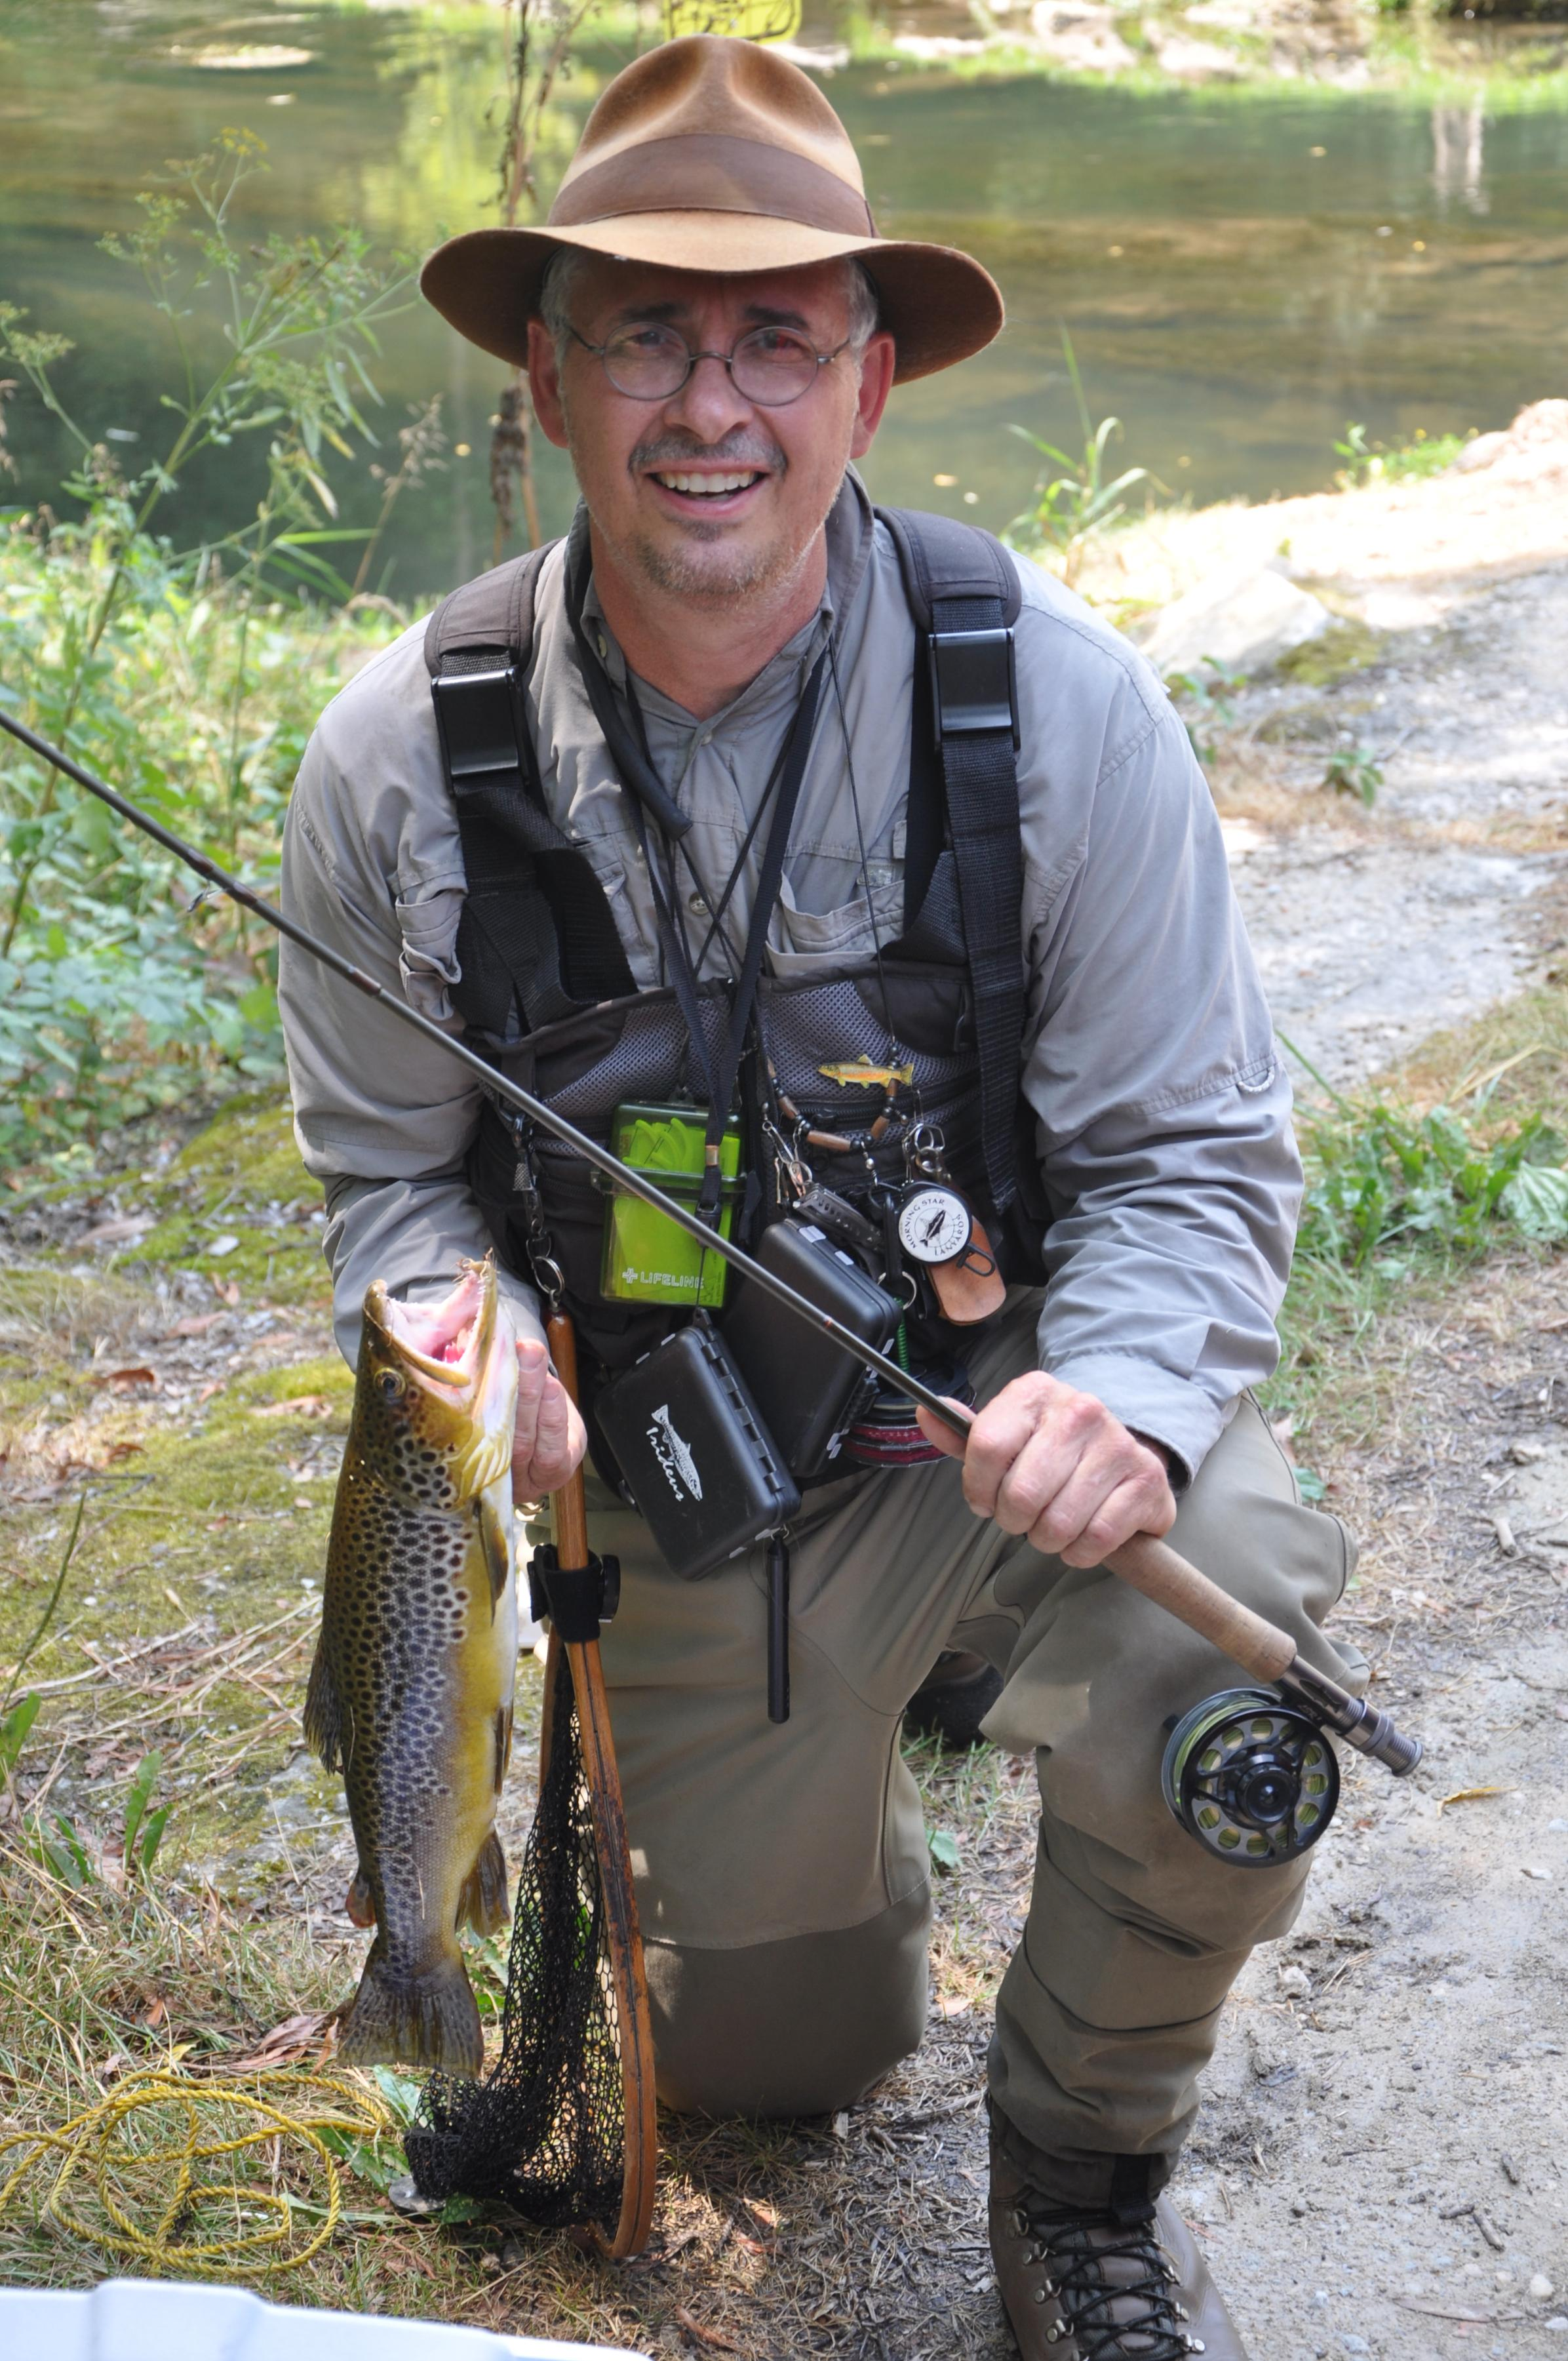 Bwca Orvis Clearwater Fly Rod And Reel Boundary Waters